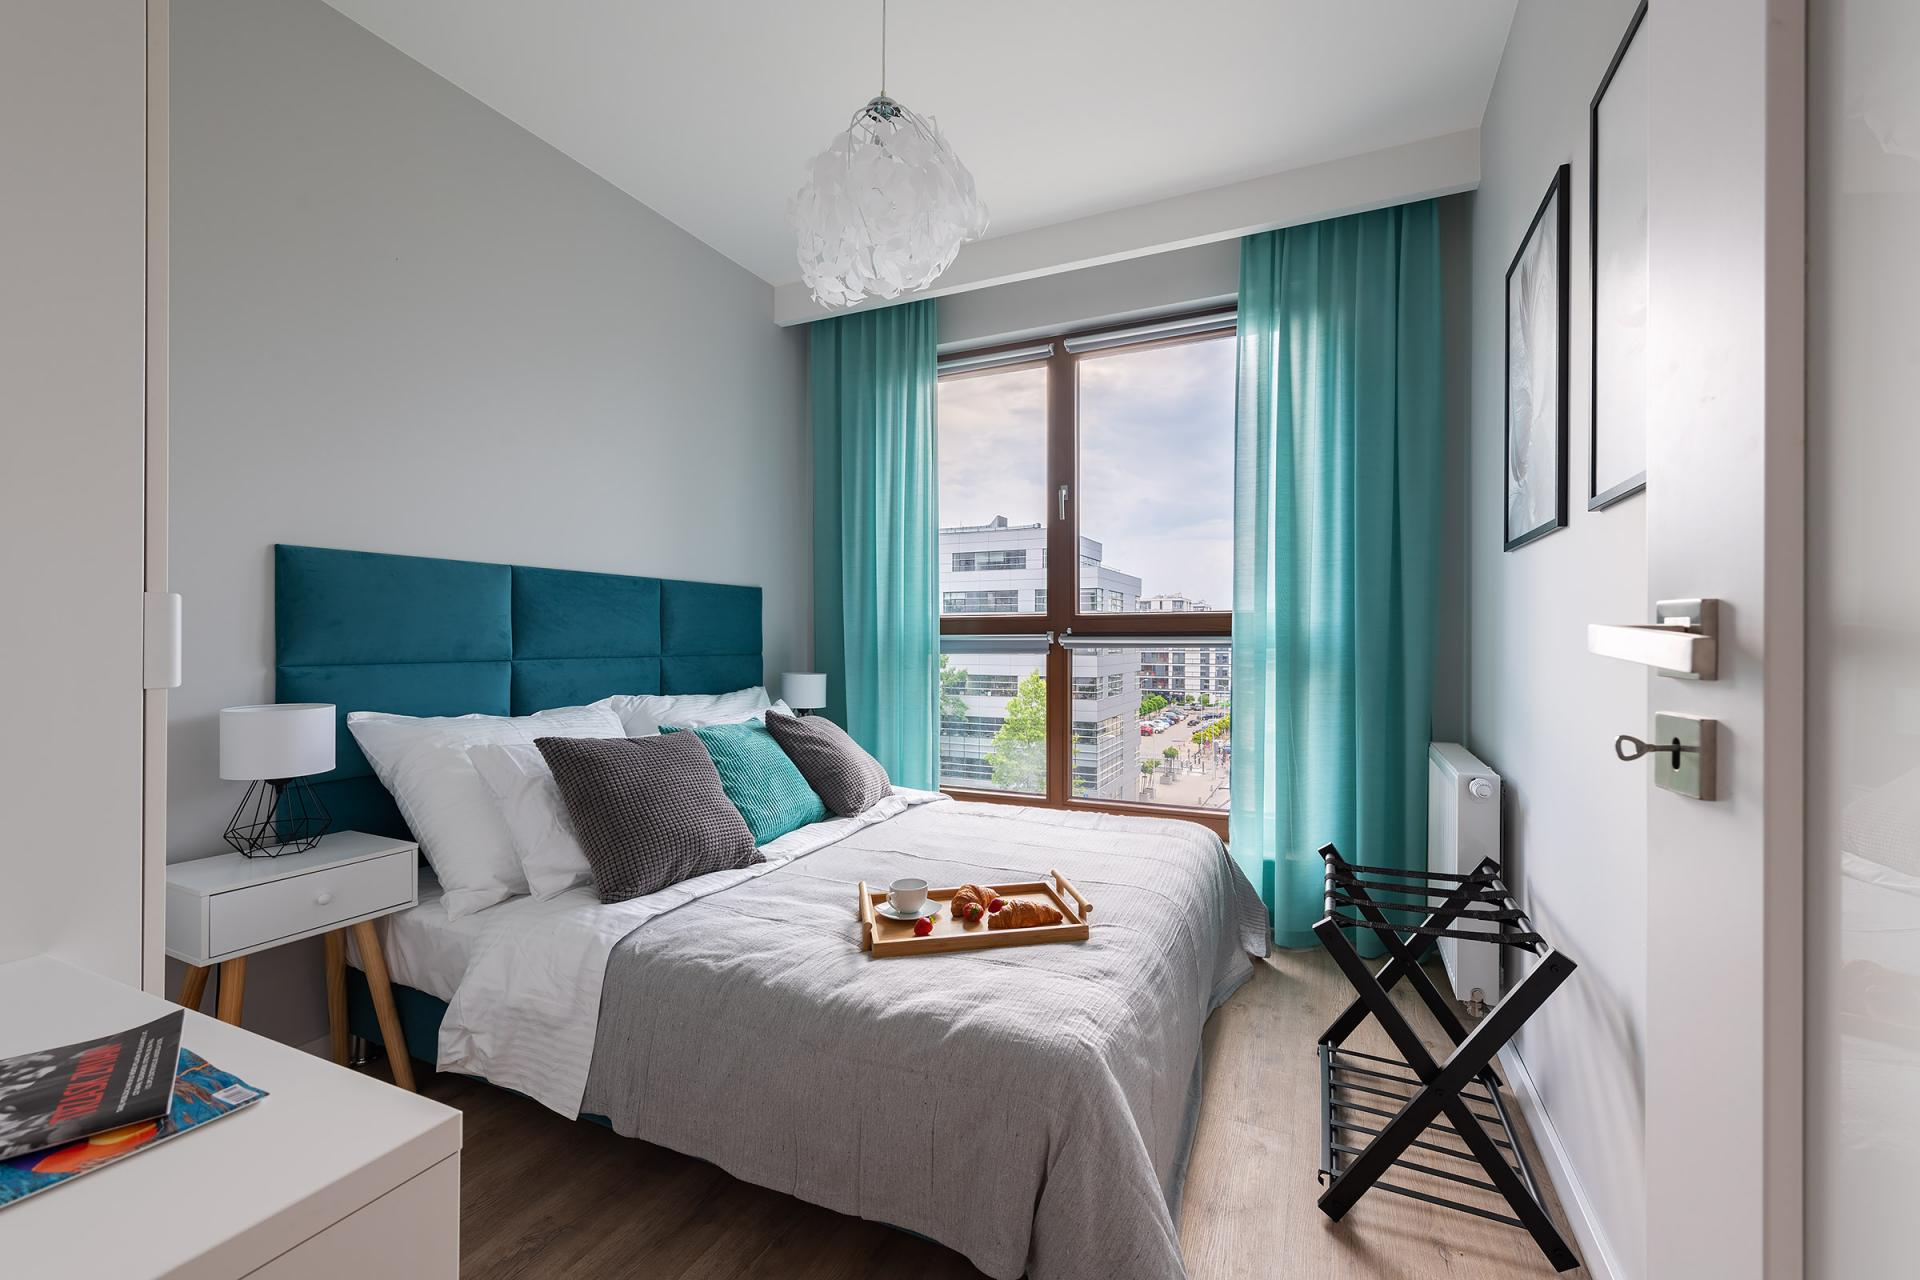 Double bed at Cybernetyki 4 Apartment, Sluzewiec, Warsaw - Citybase Apartments